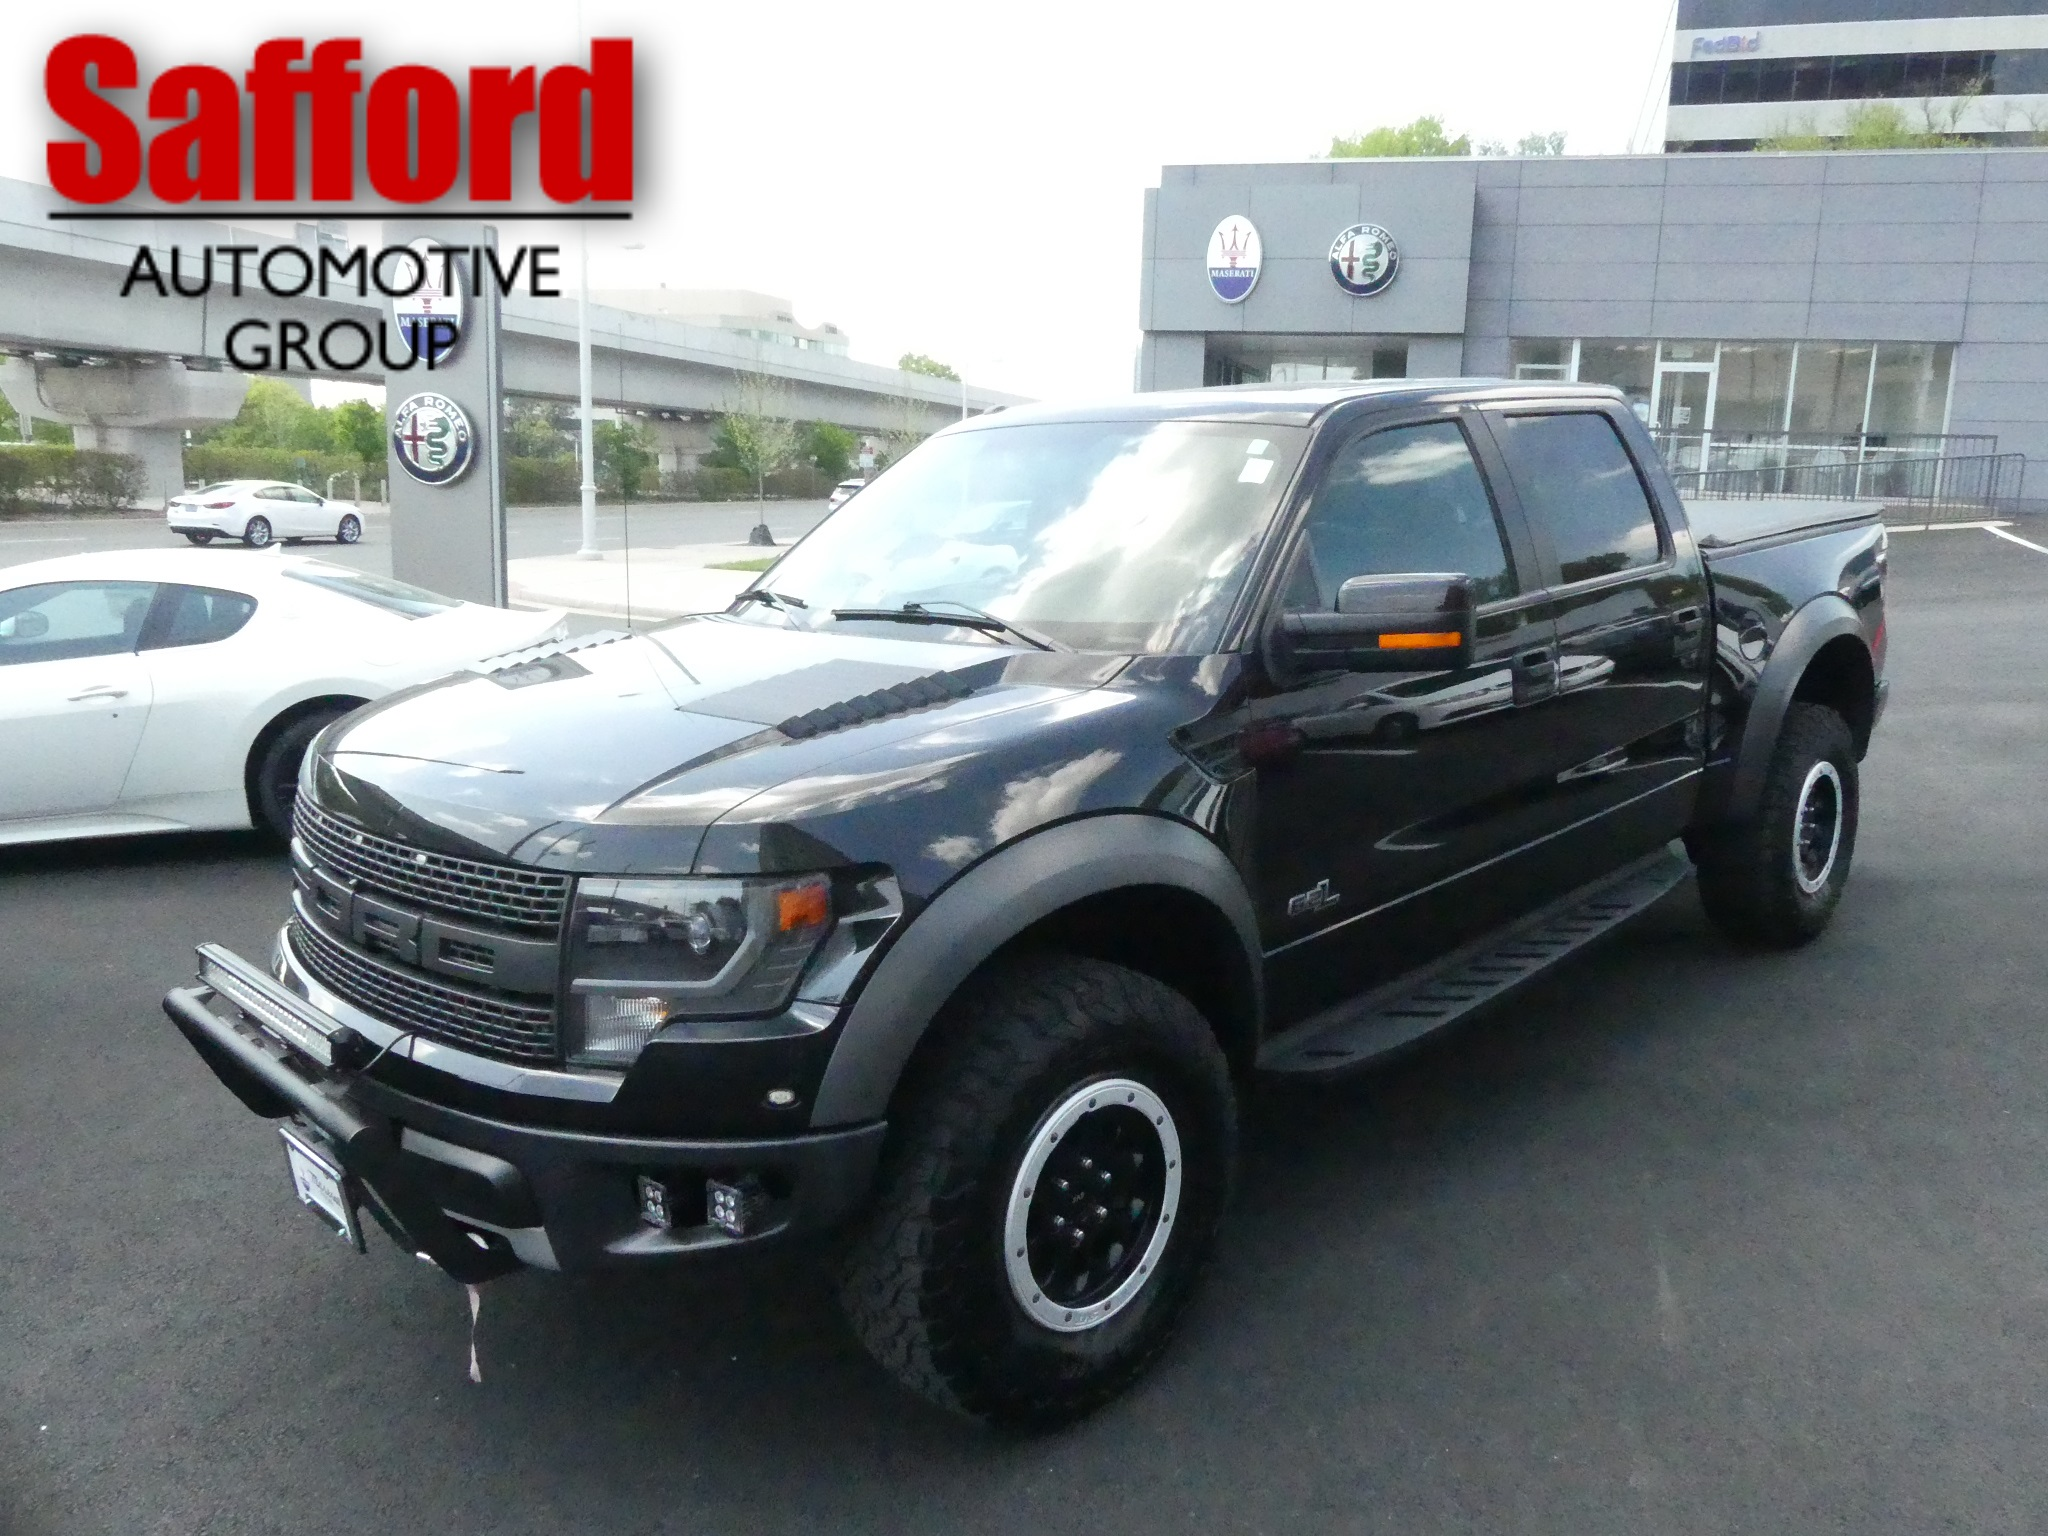 raptor on svt cars jamesedition united ford for f states sale in